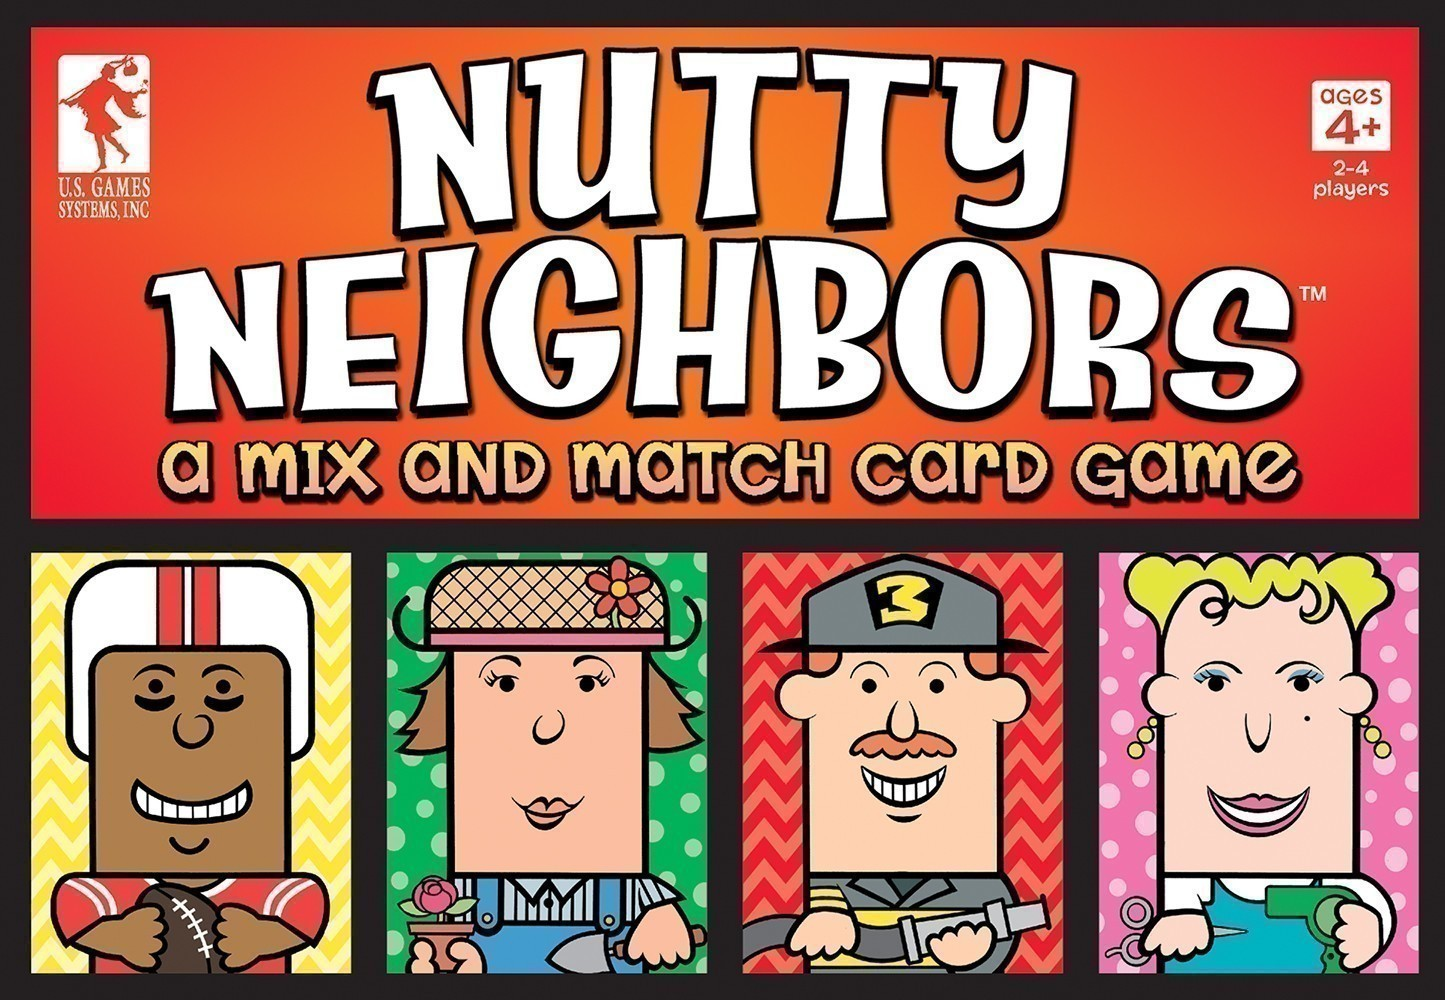 Nutty Neighbors™